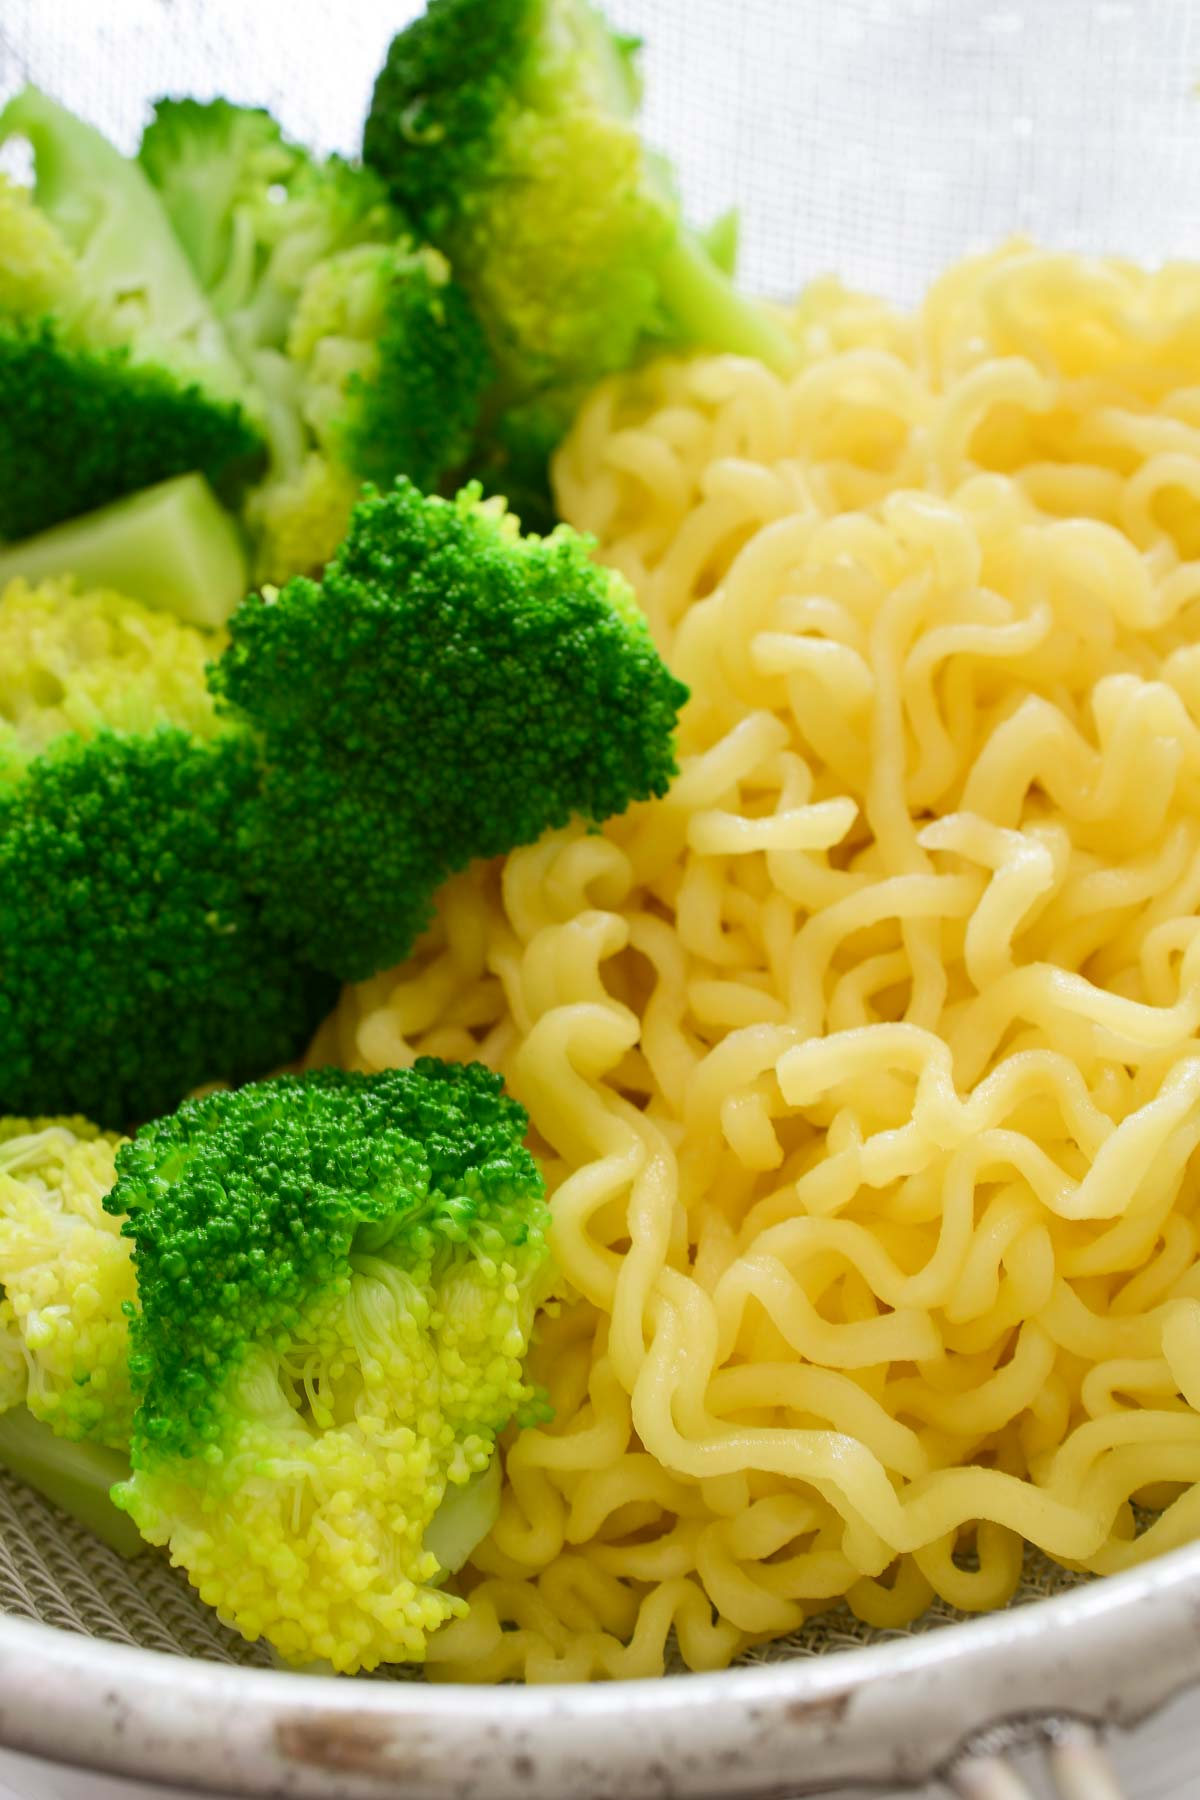 A strainer with the cooked ramen noodles and broccoli.